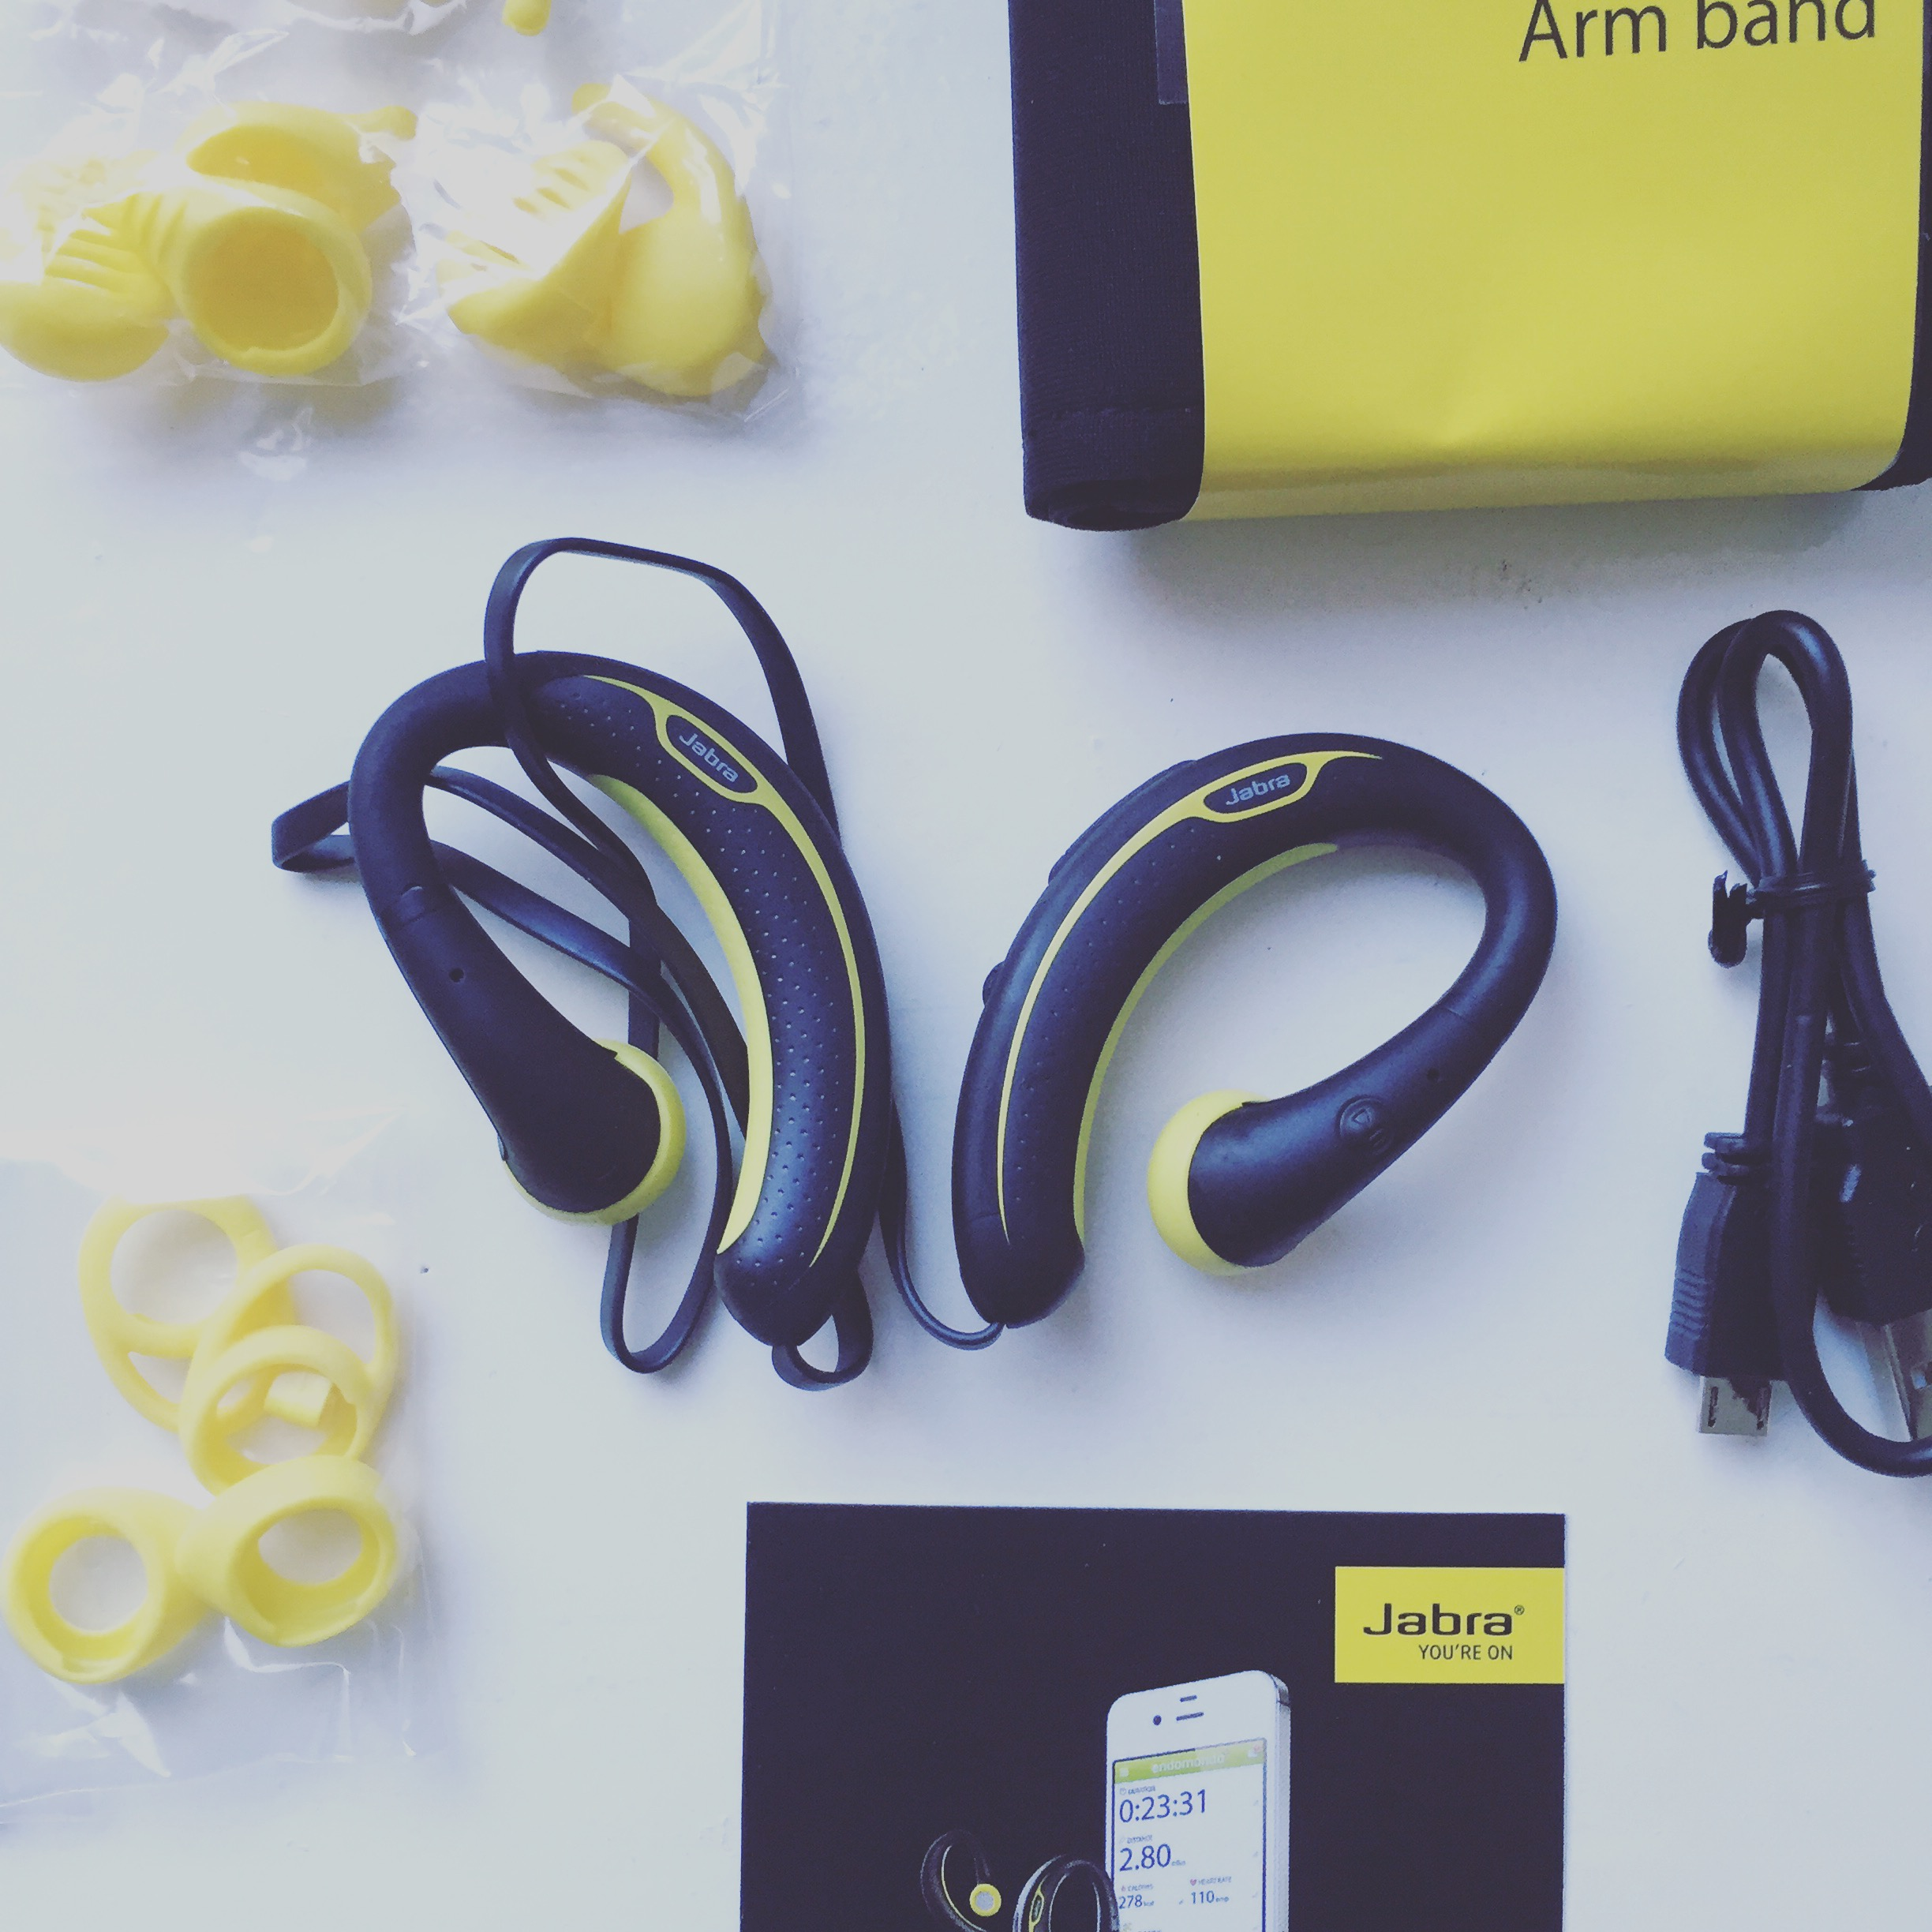 Review: Jabra Sport Wireless+